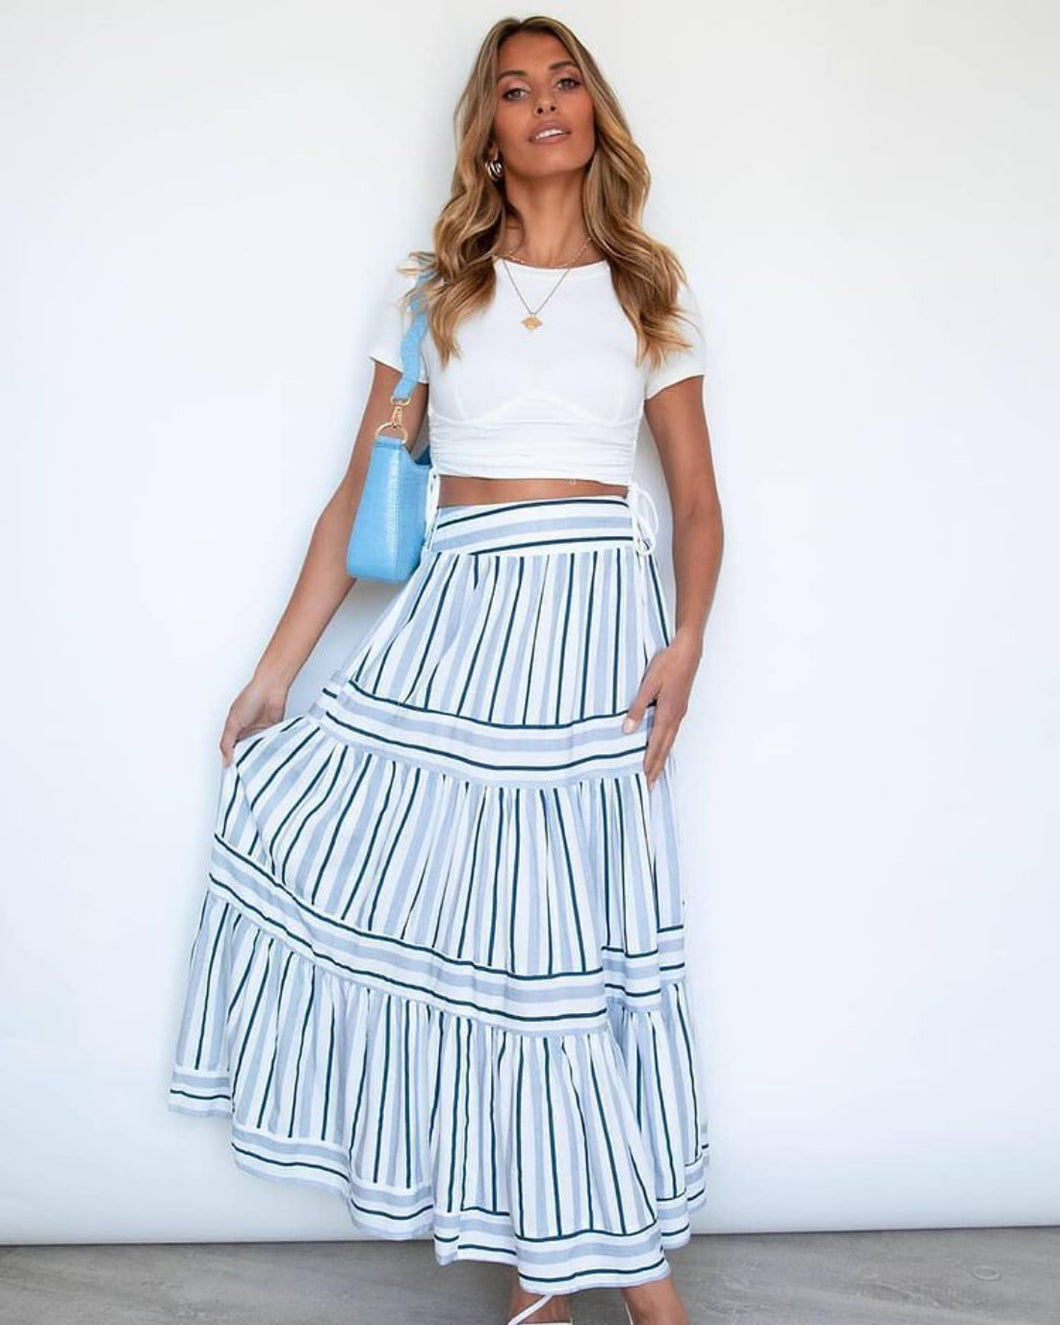 White Closet Skirt NAVY